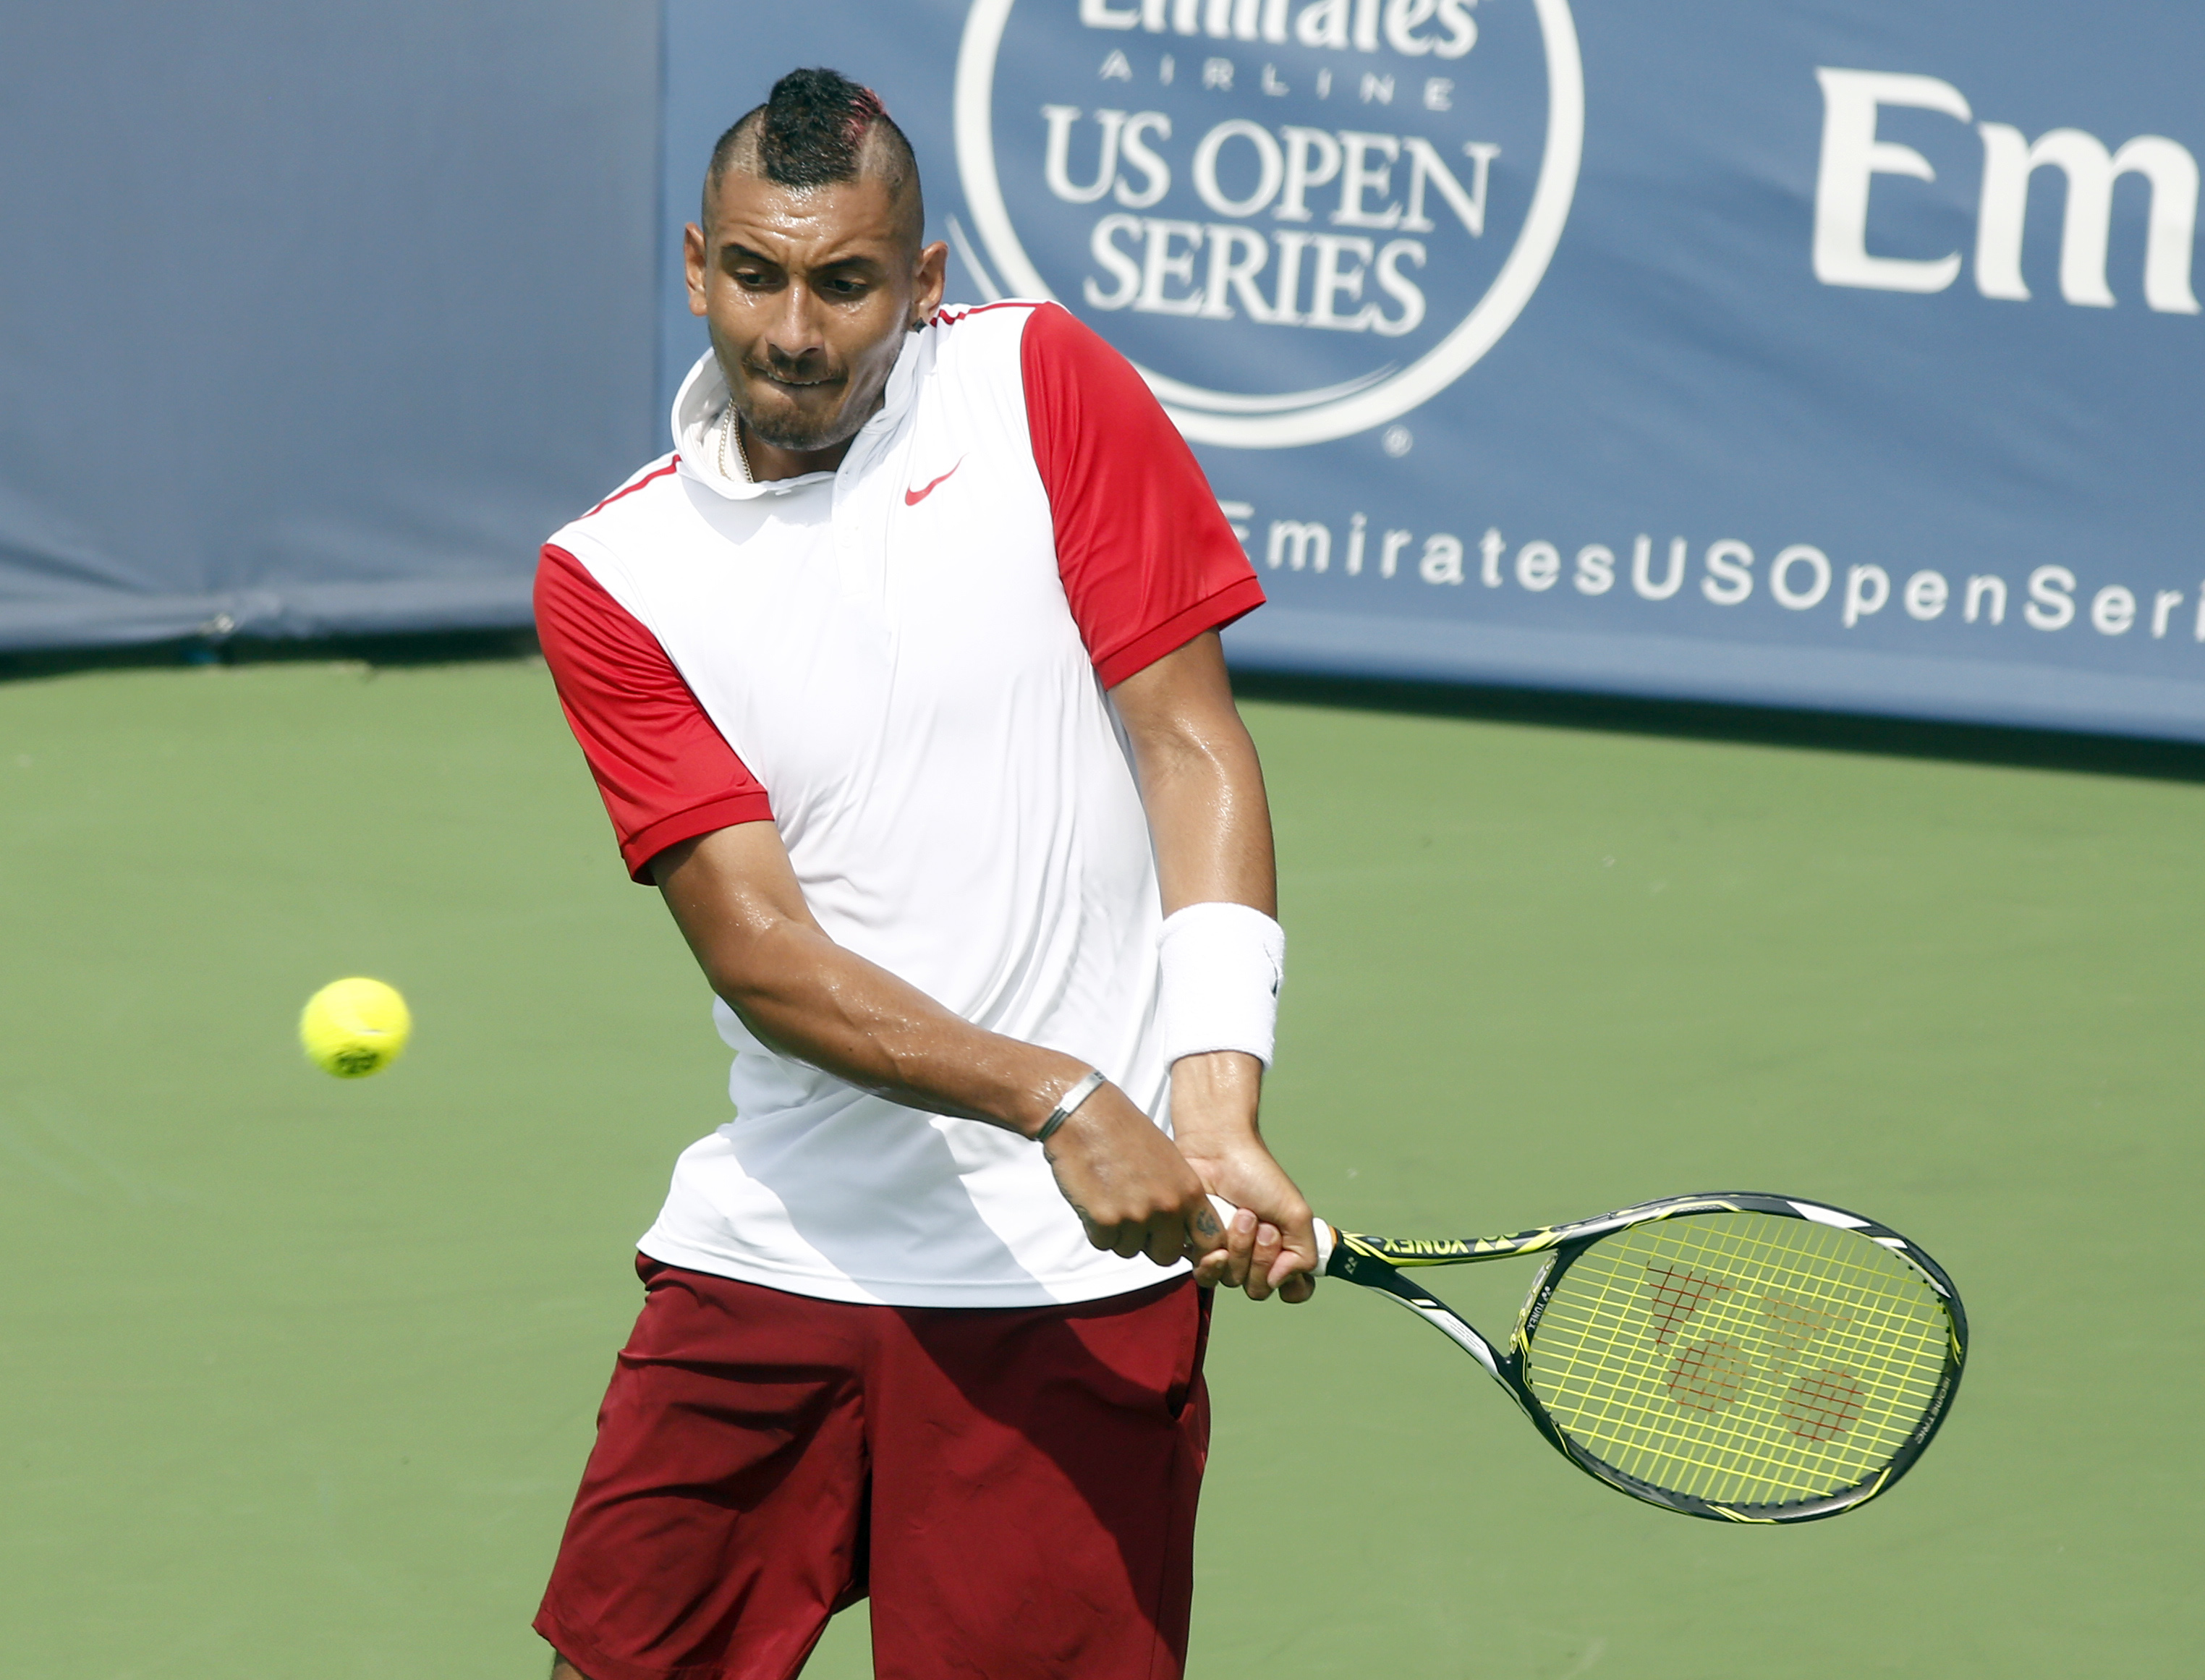 Nick Kyrgios, of Australia, returns to Richard Gasquet, of France, during a first round match at the Western & Southern Open tennis tournament, Tuesday, Aug. 18, 2015, in Mason, Ohio. (AP Photo/David Kohl)